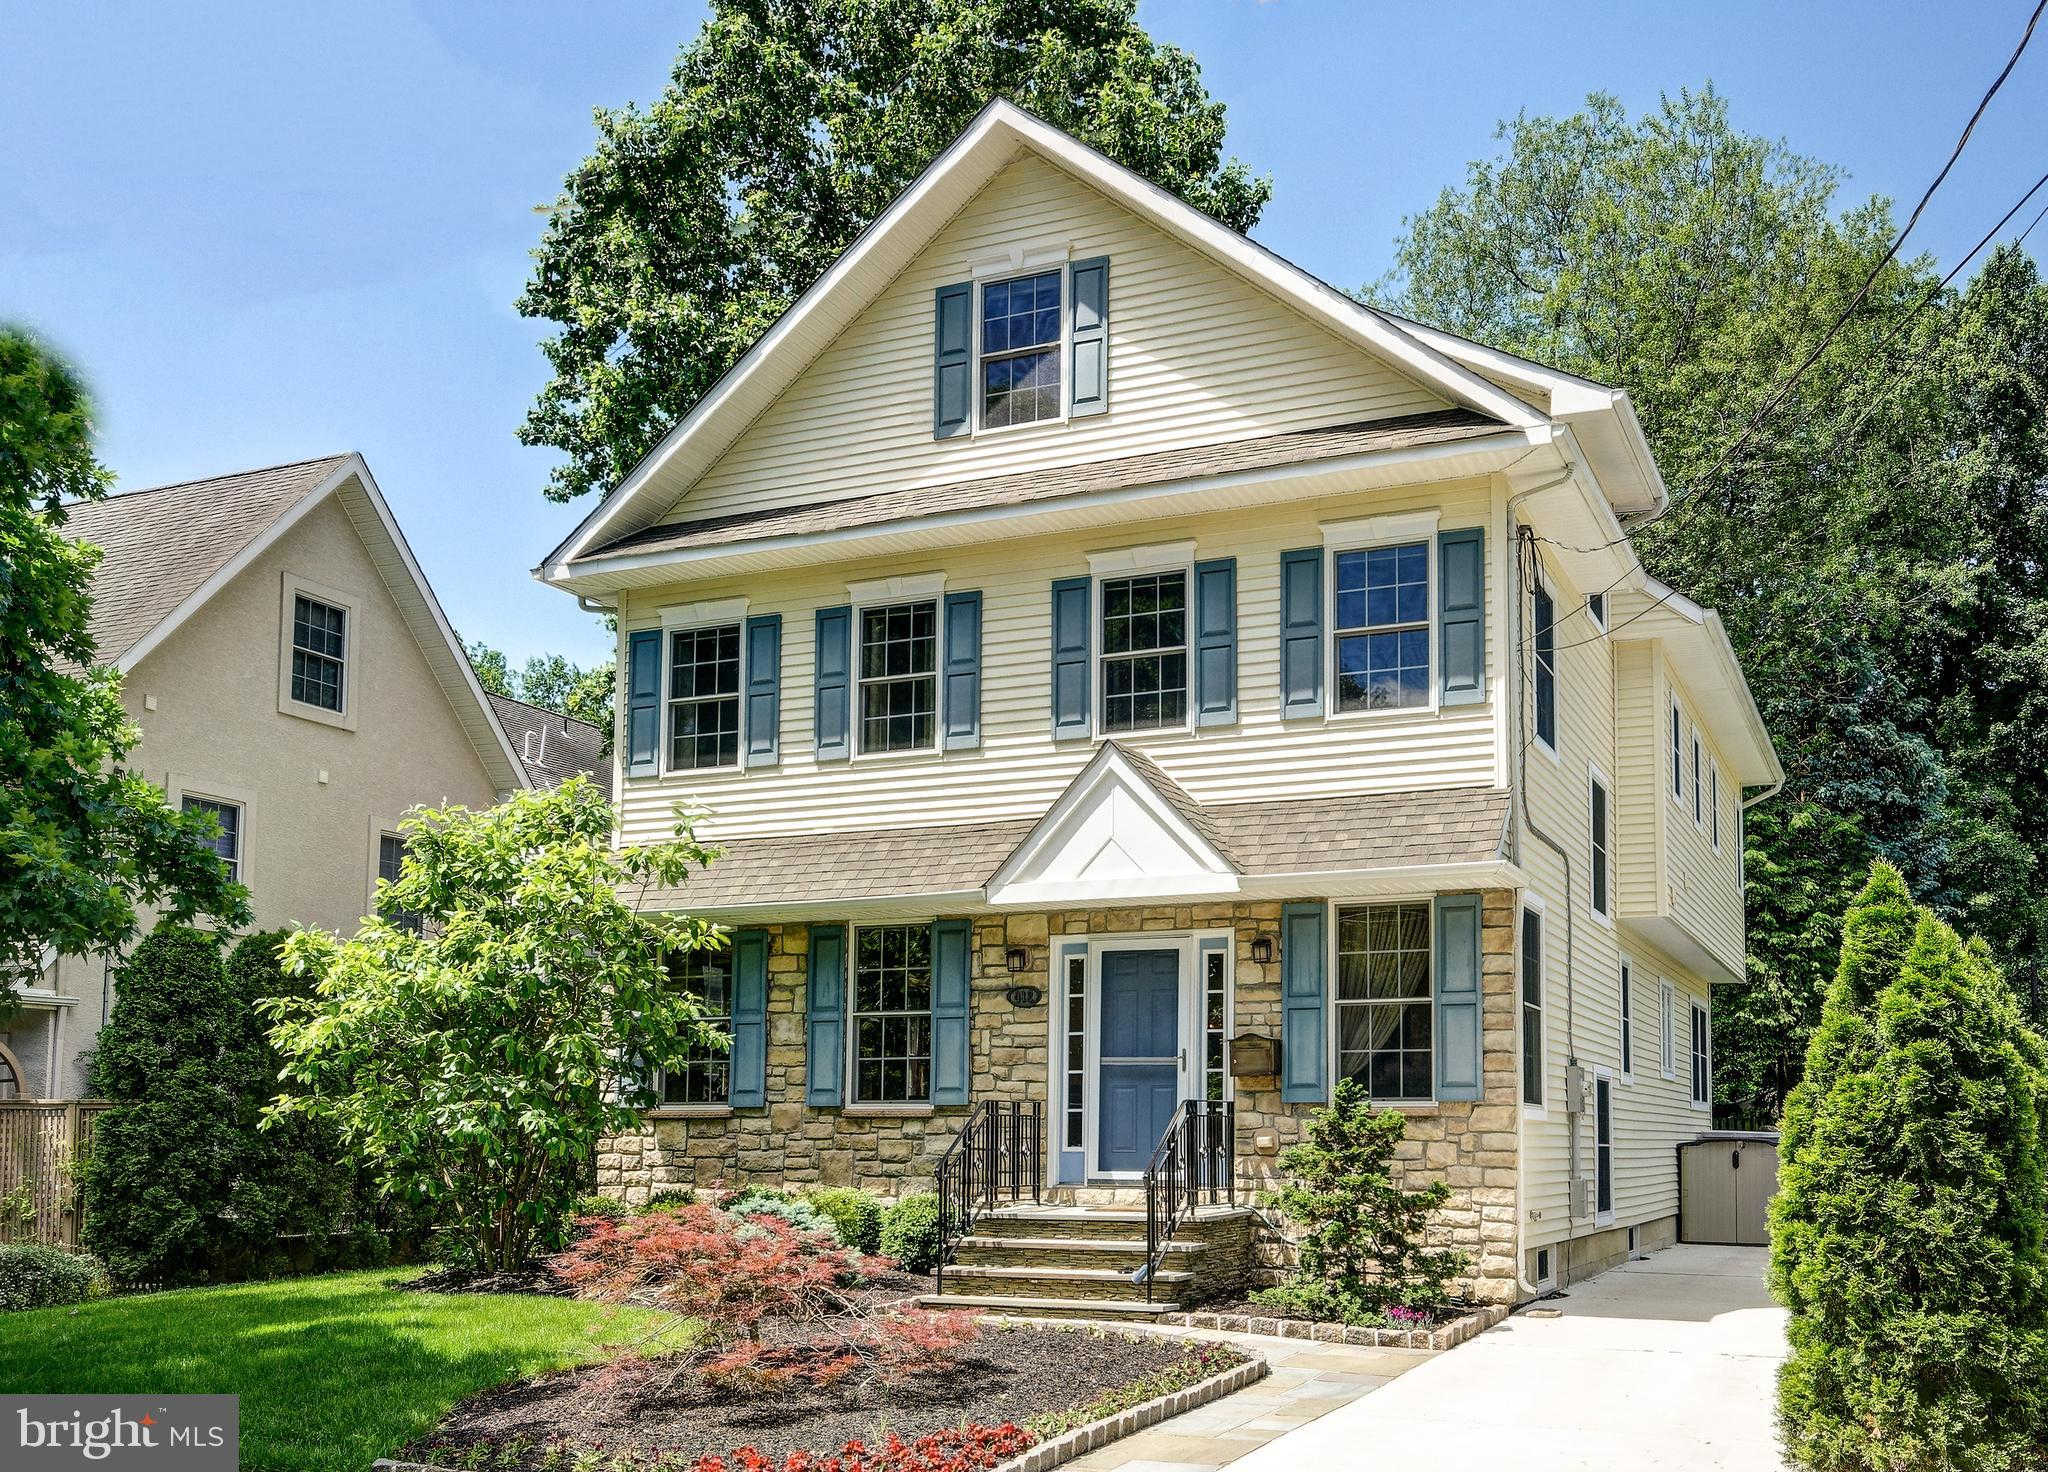 412 Spruce Street, Haddonfield, NJ 08033 now has a new price of $689,000!